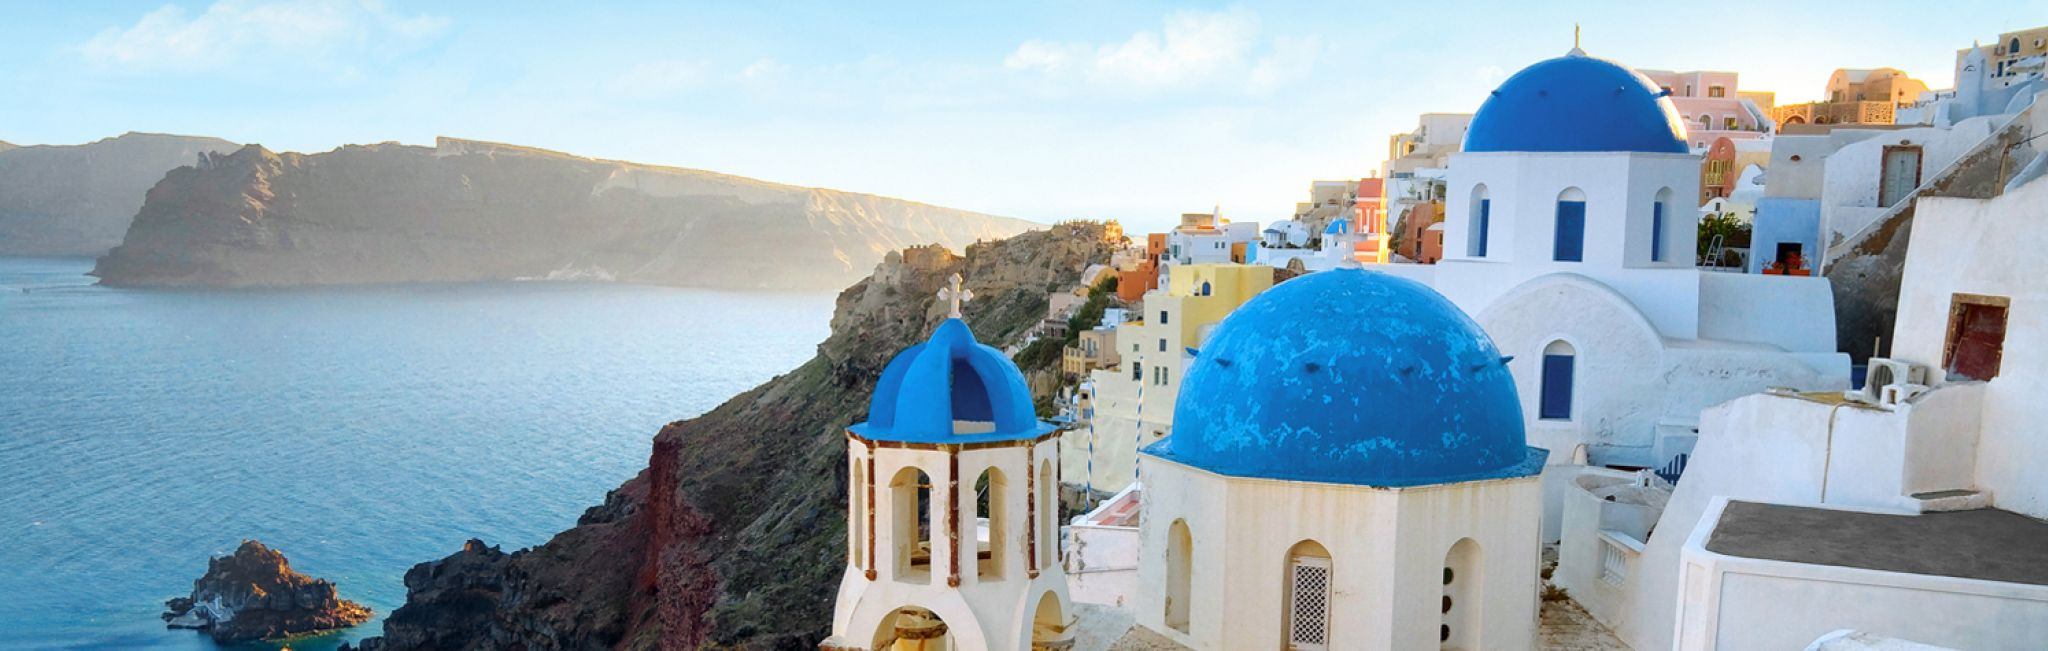 Best Greece Vacations Tours Greek Island Vacations Packages - Trip to greece